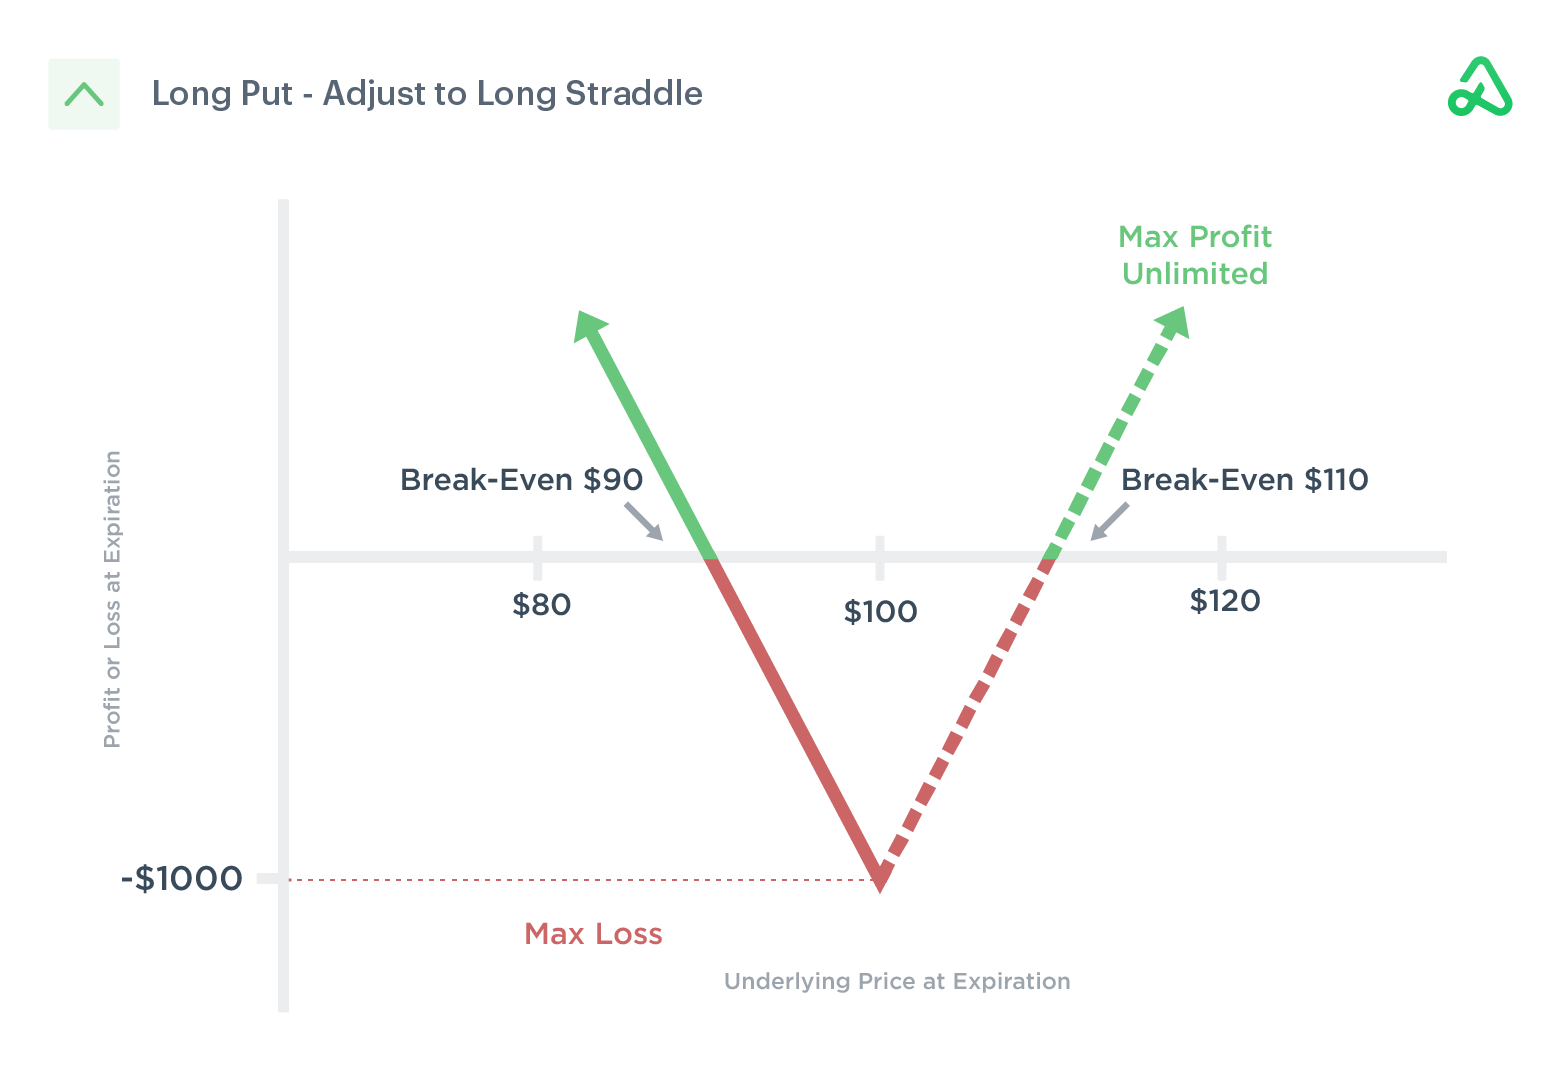 Long put converted to a long straddle to hedge price action